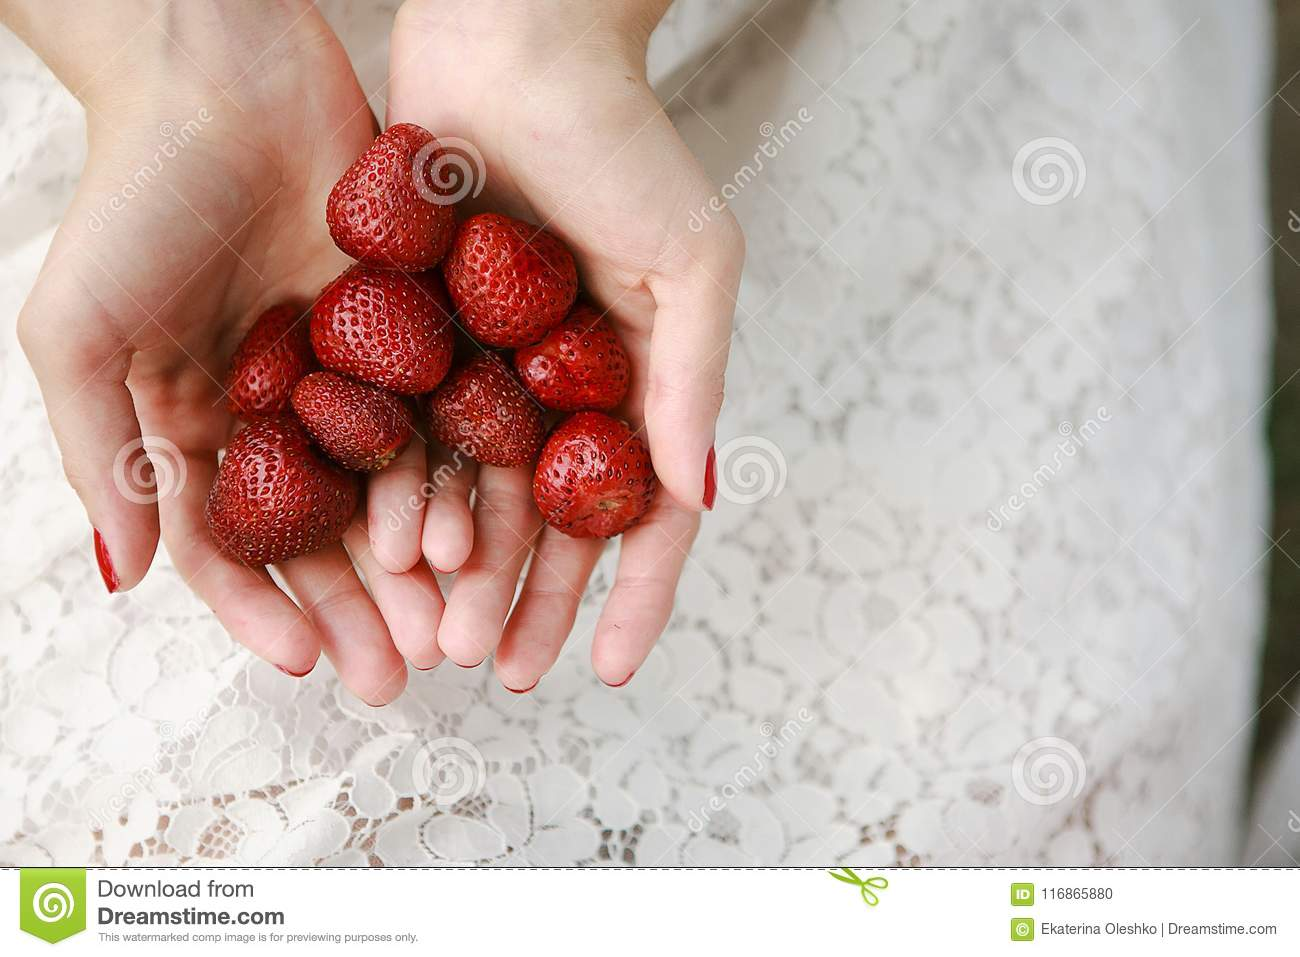 Female hands hold a handful of strawberries